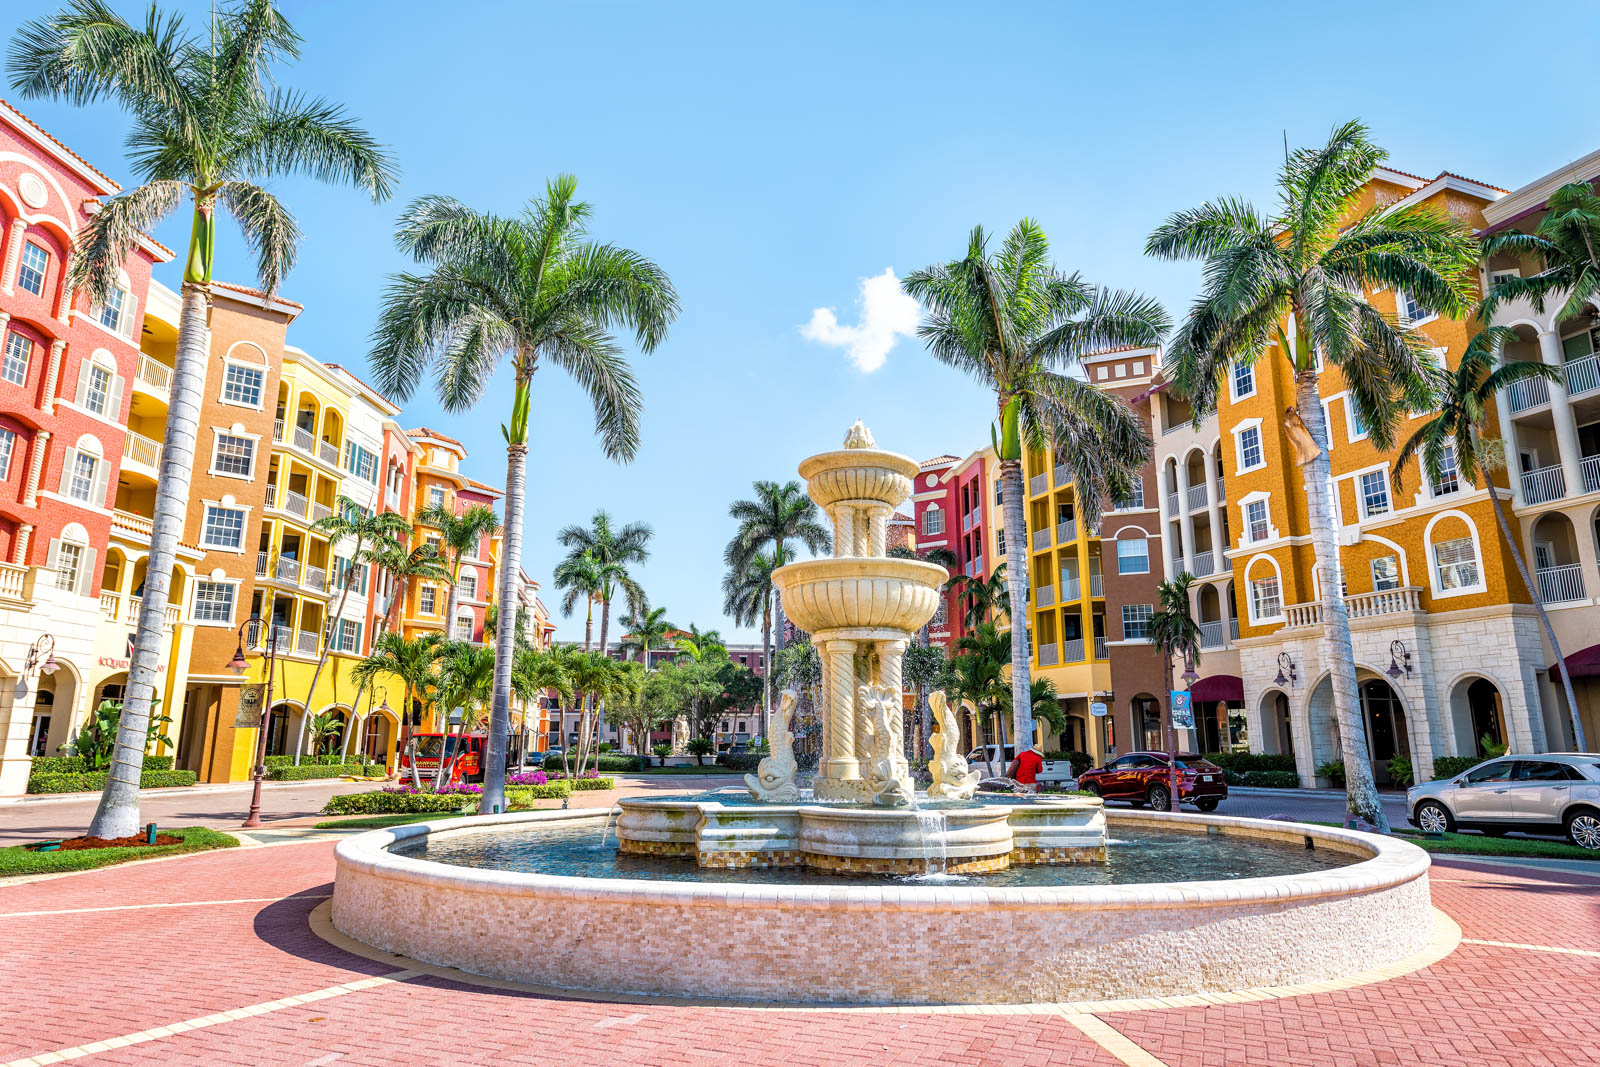 Places to Visit in Florida: 9 Top things to do in Florida